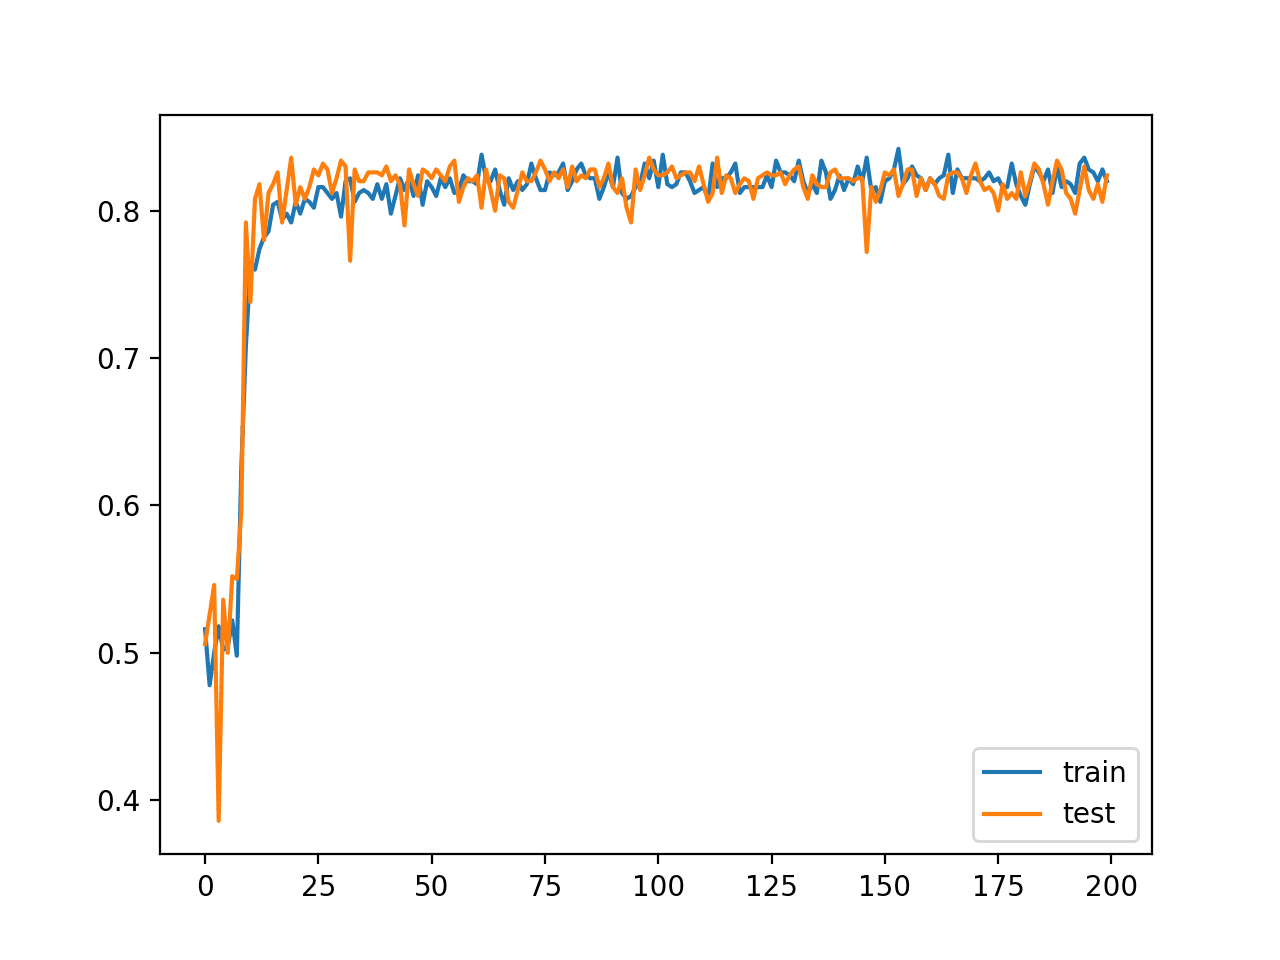 Line Plot of Classification Accuracy on Train and Tests Sets of an MLP Fit With Stochastic Gradient Descent and Smaller Learning Rate